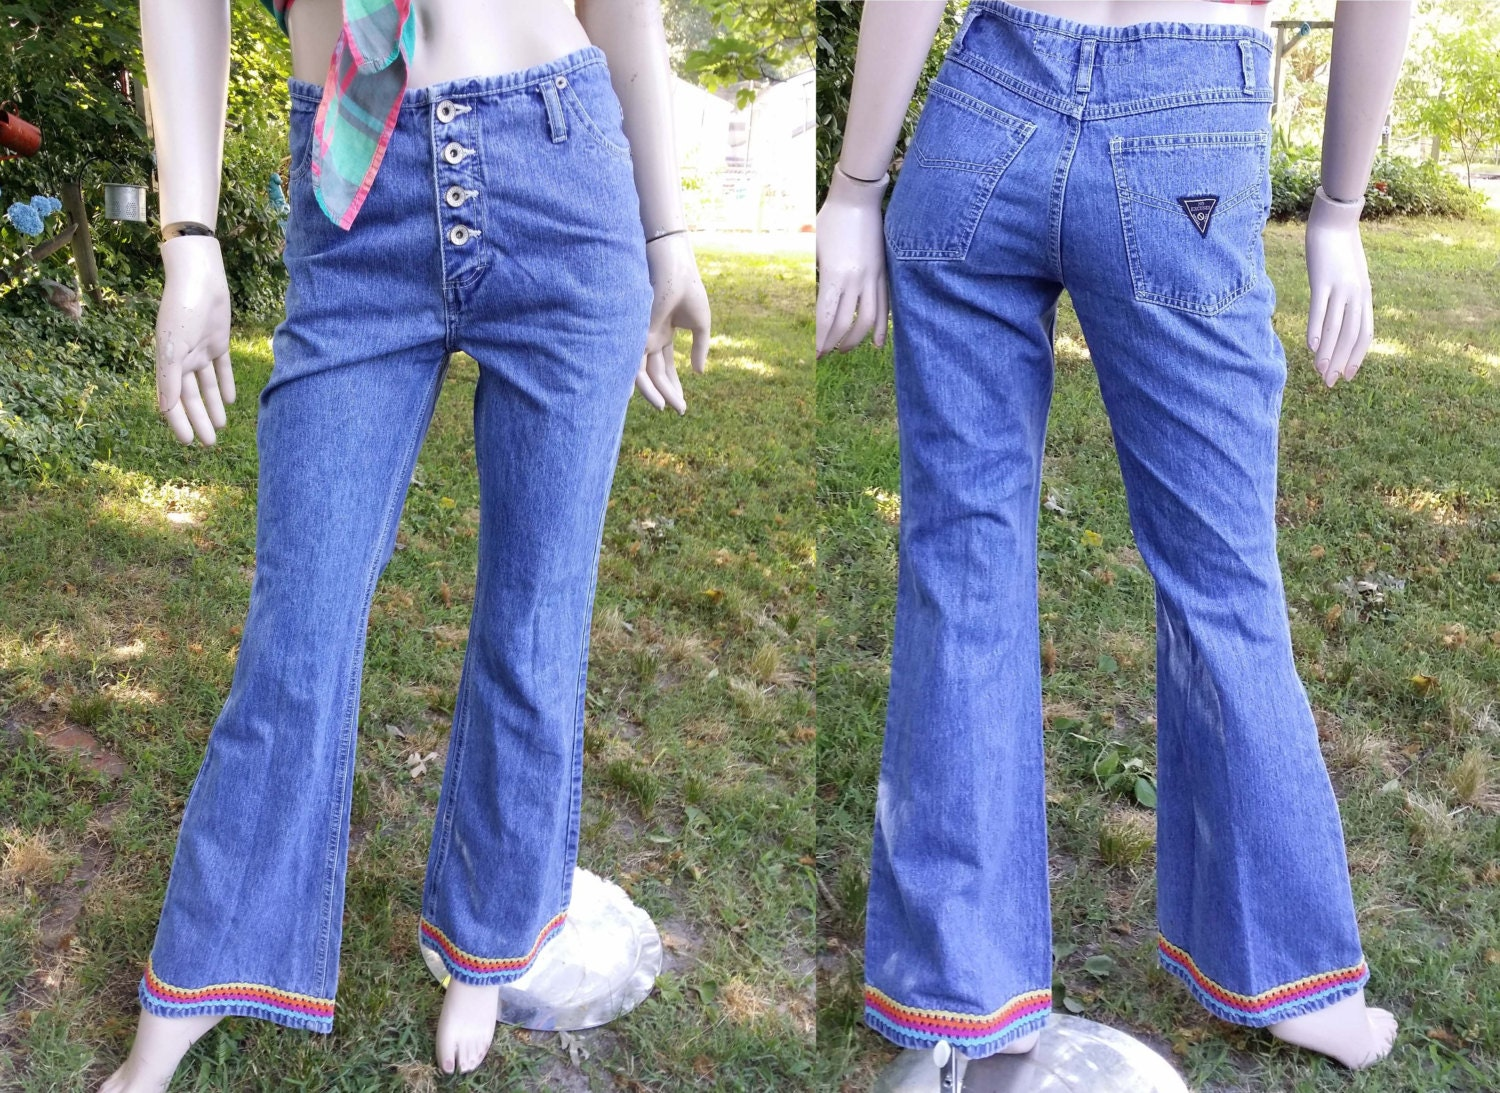 Well-liked Womens Jeans 80s Jeans Vintage Jeans Bell Bottom Jeans HS97